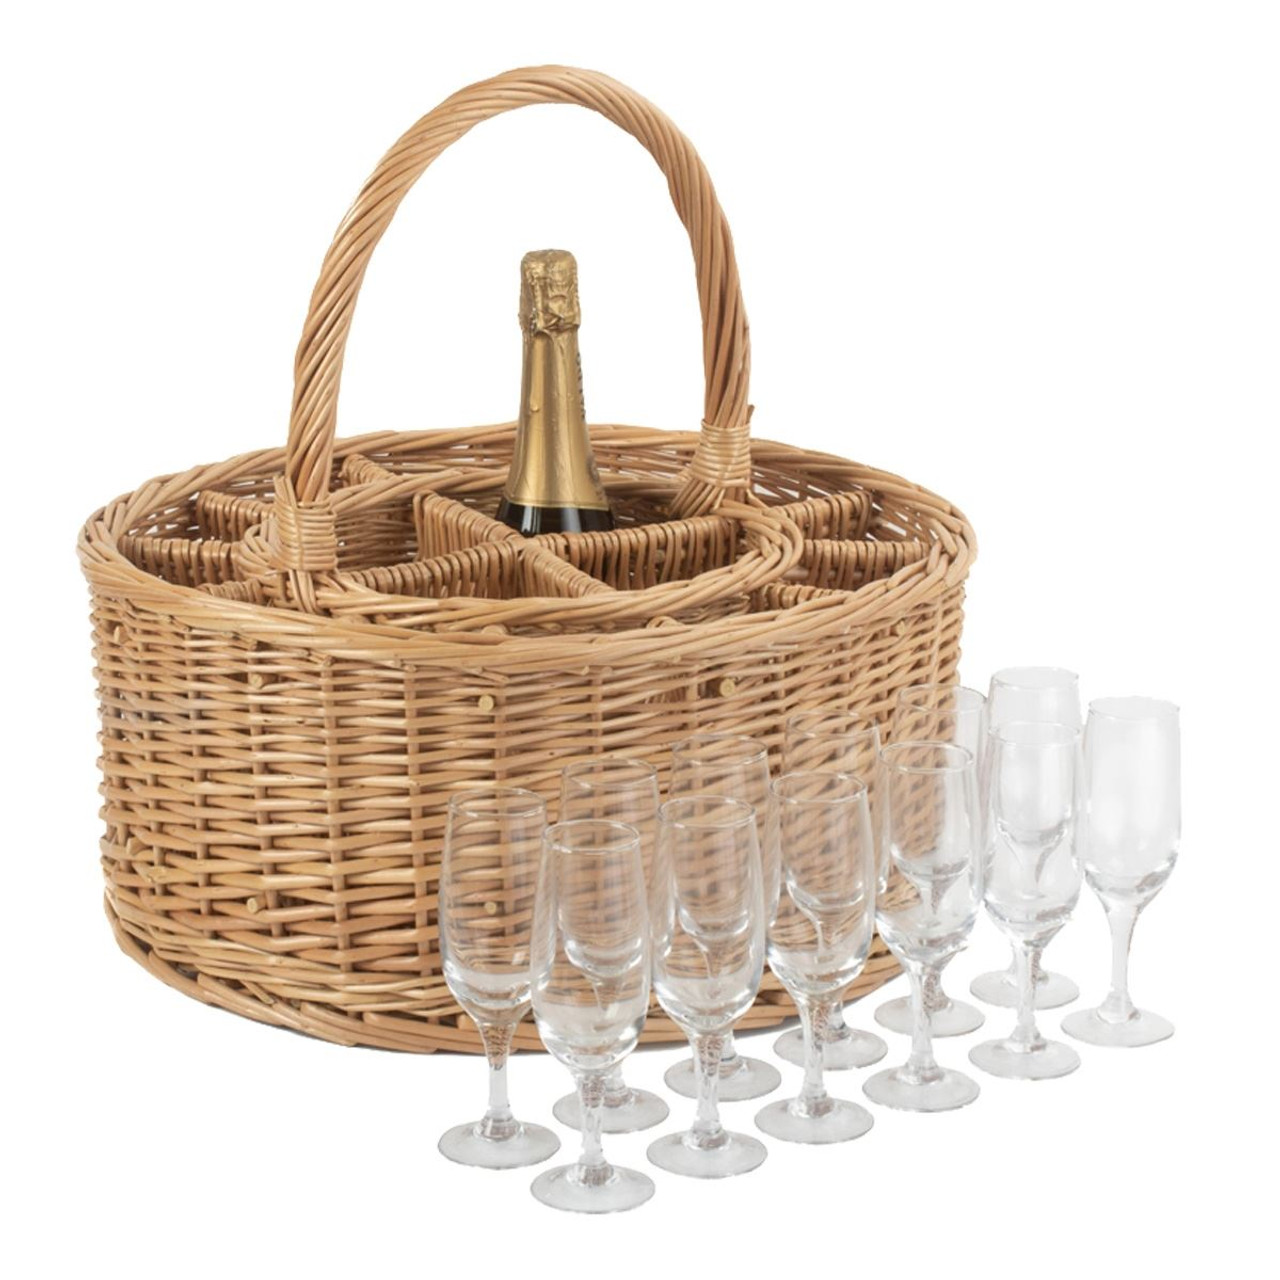 Willow Drinks Party Basket and Glasses